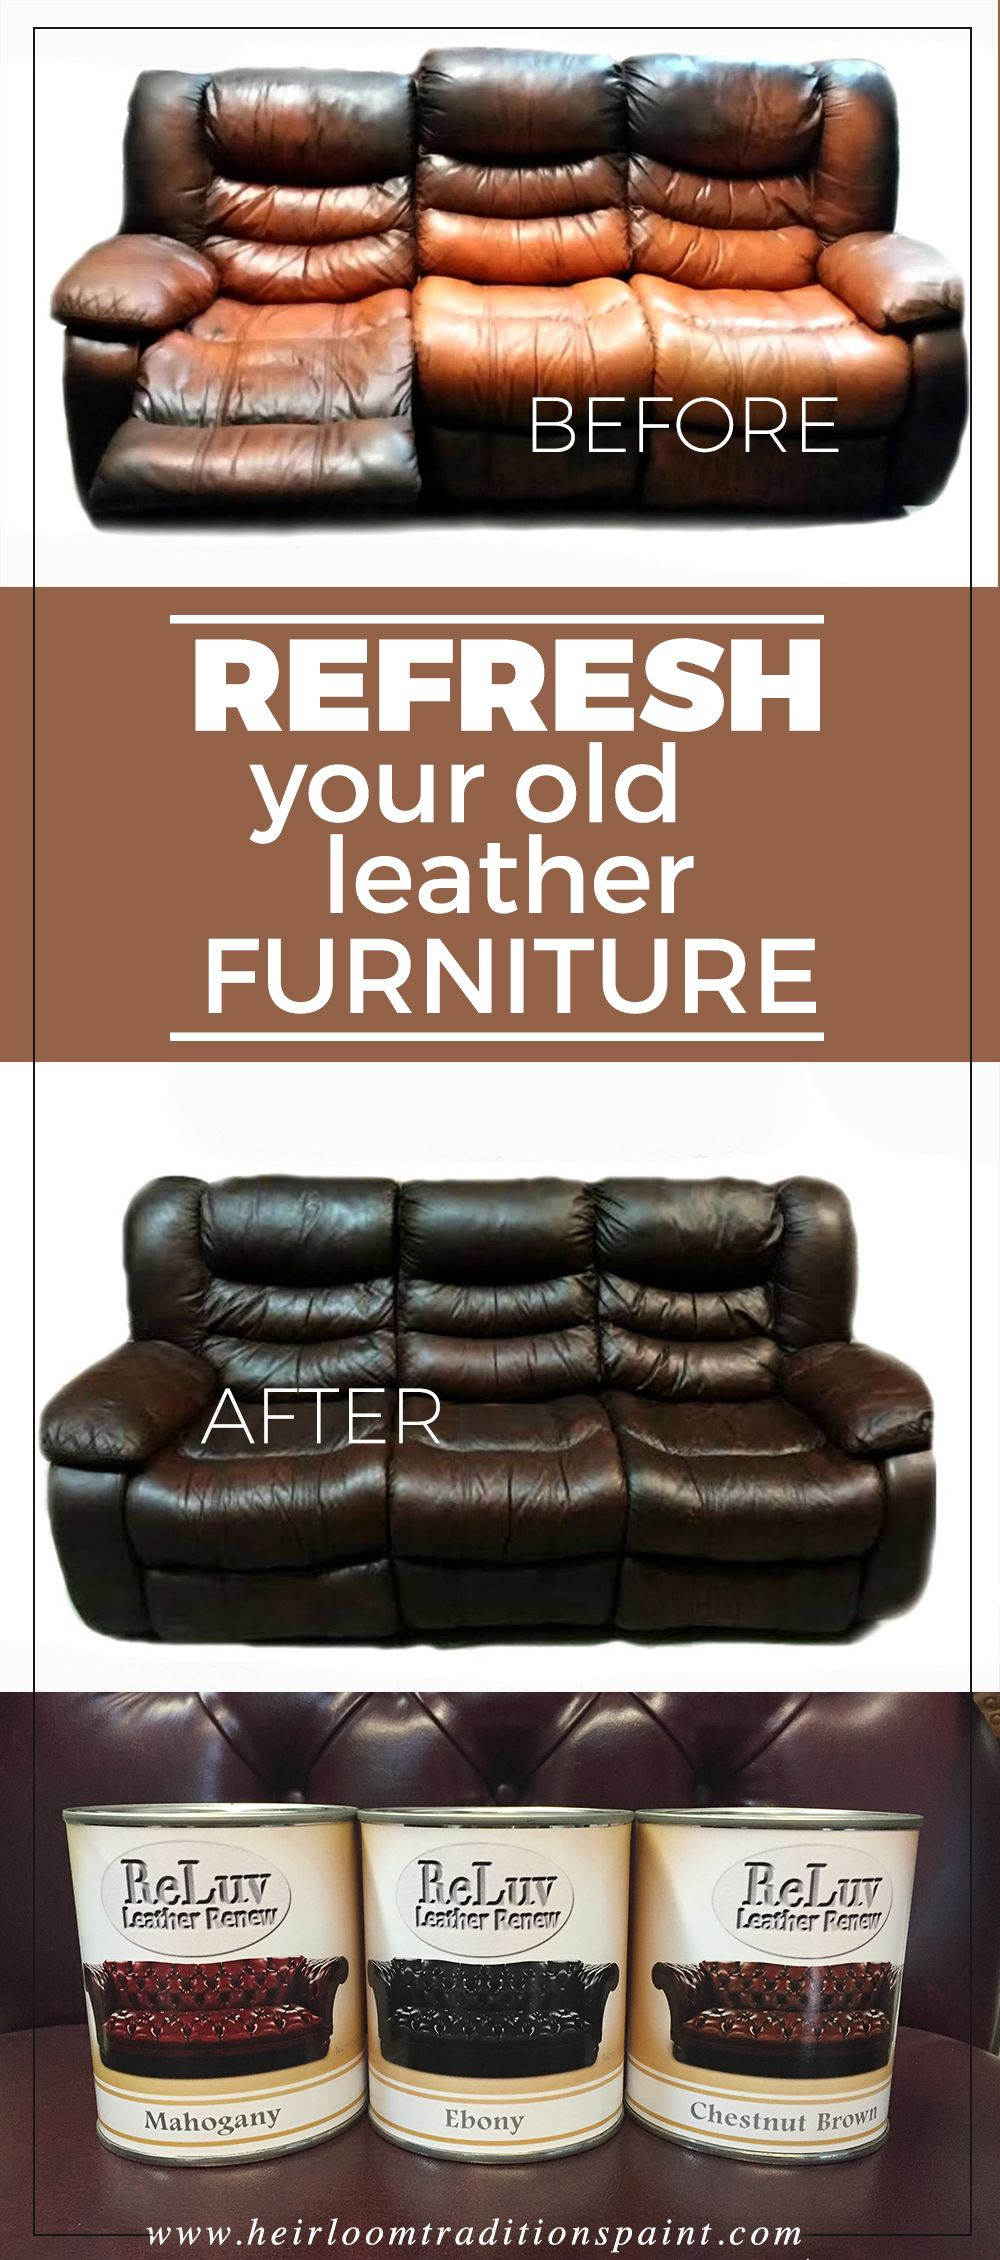 Delightful Bring New Life To Your Old Stained And Faded Leather With ReLuv Leather  Renew By Heirloom